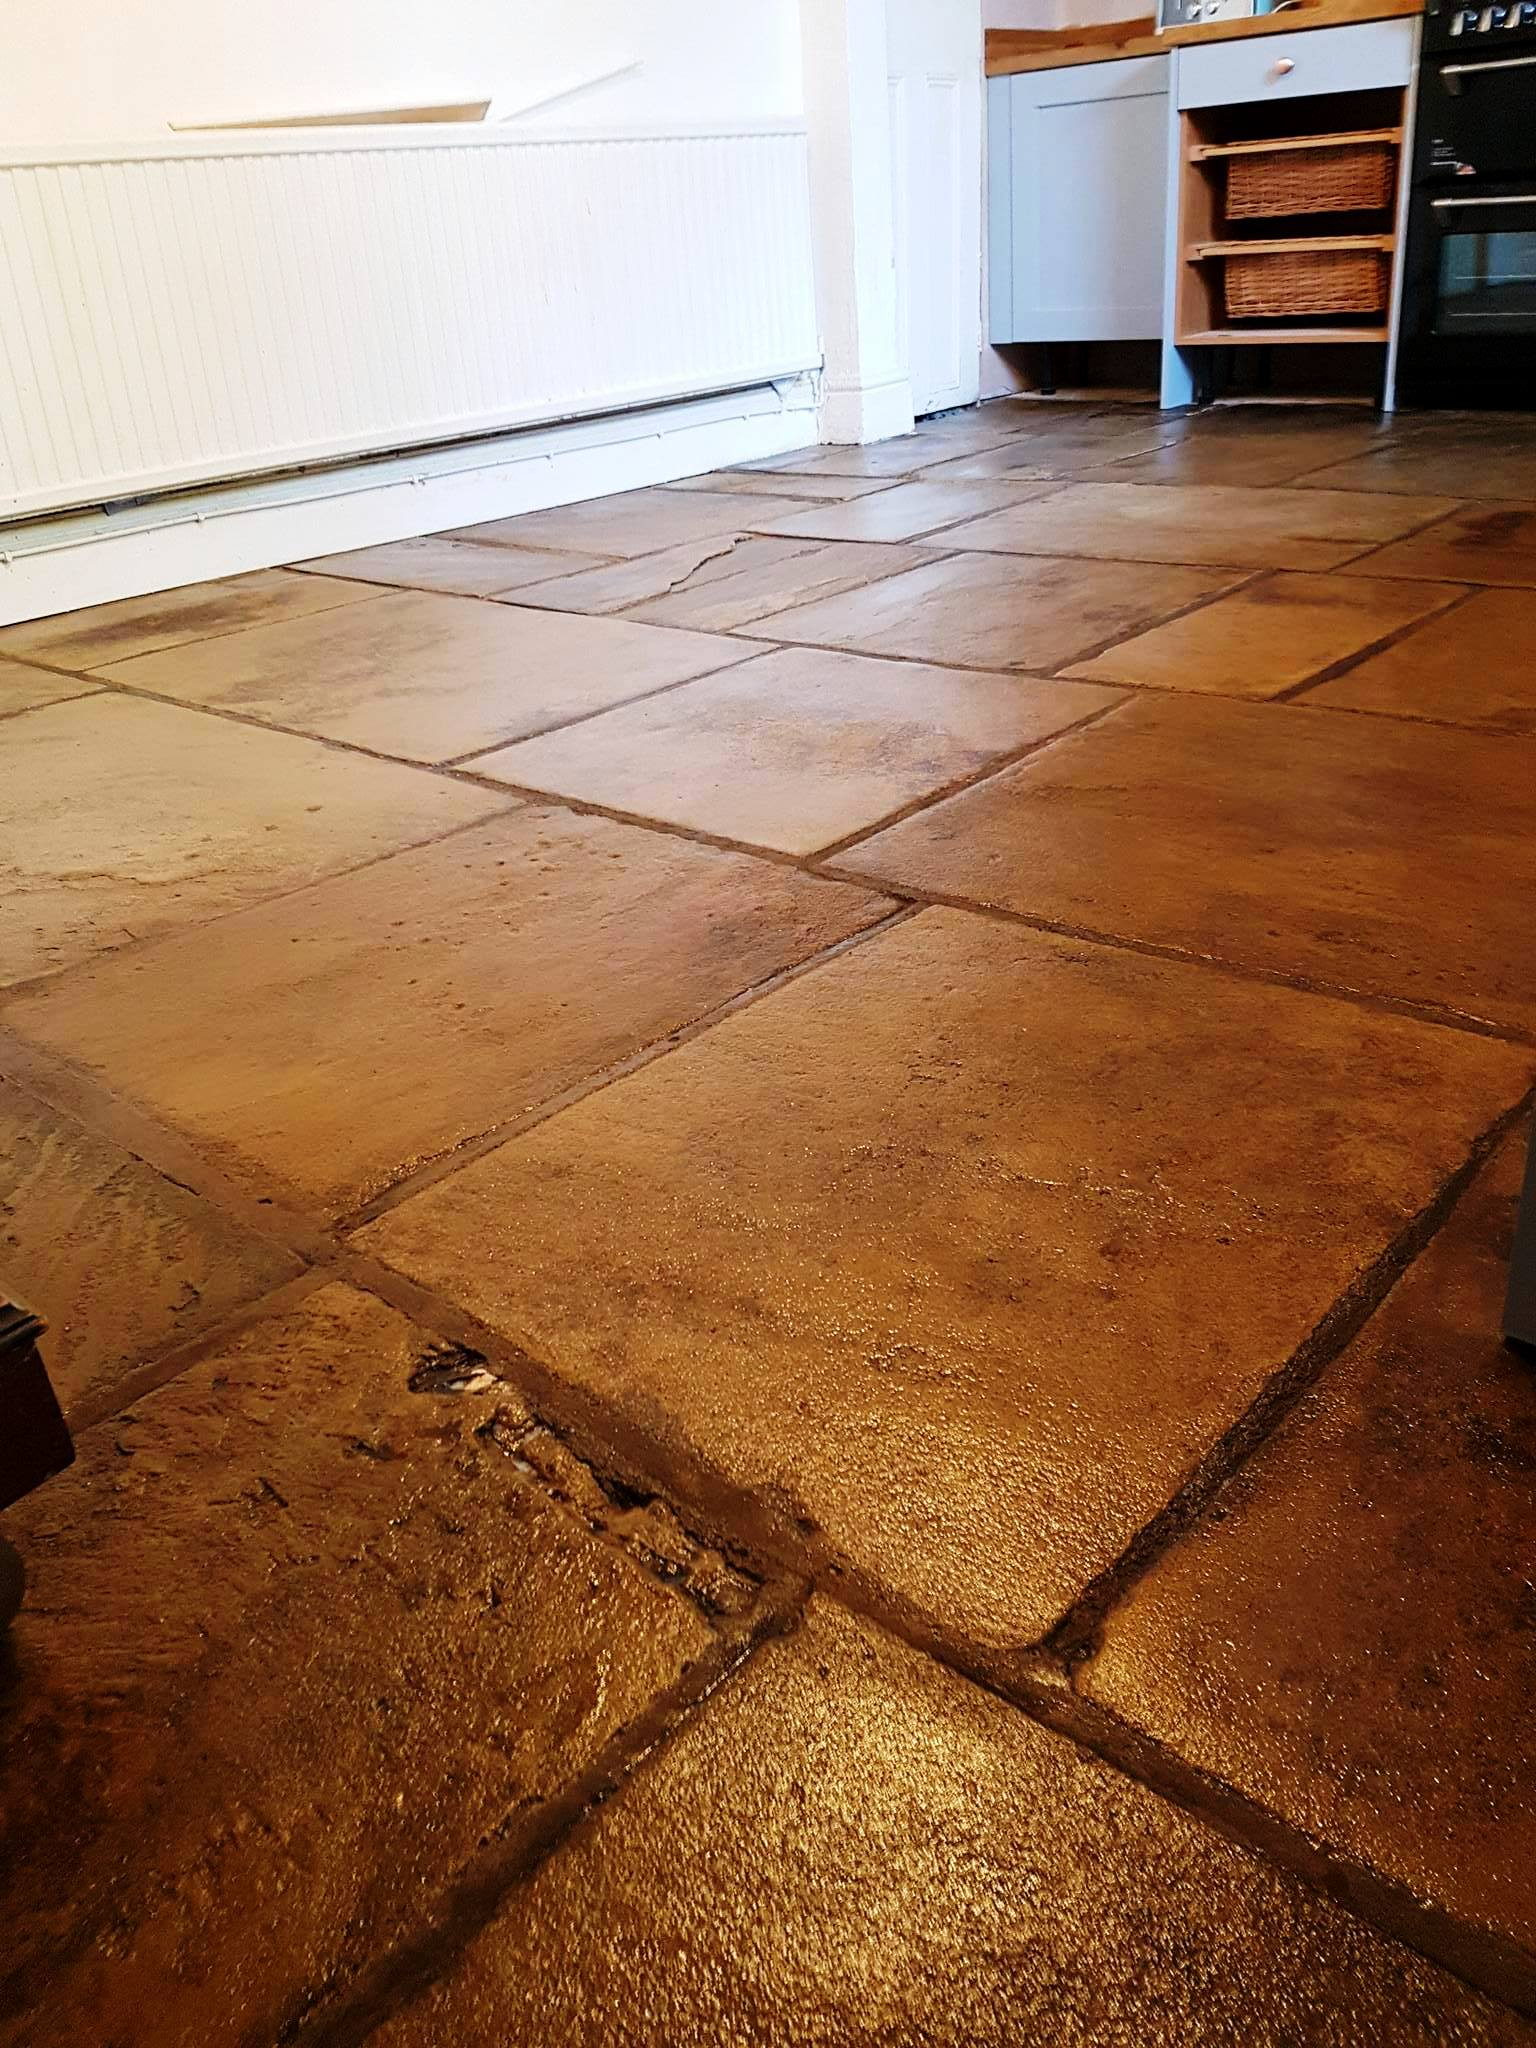 Yorkstone Slab Floor After Cleaning and Sealing in Hyde